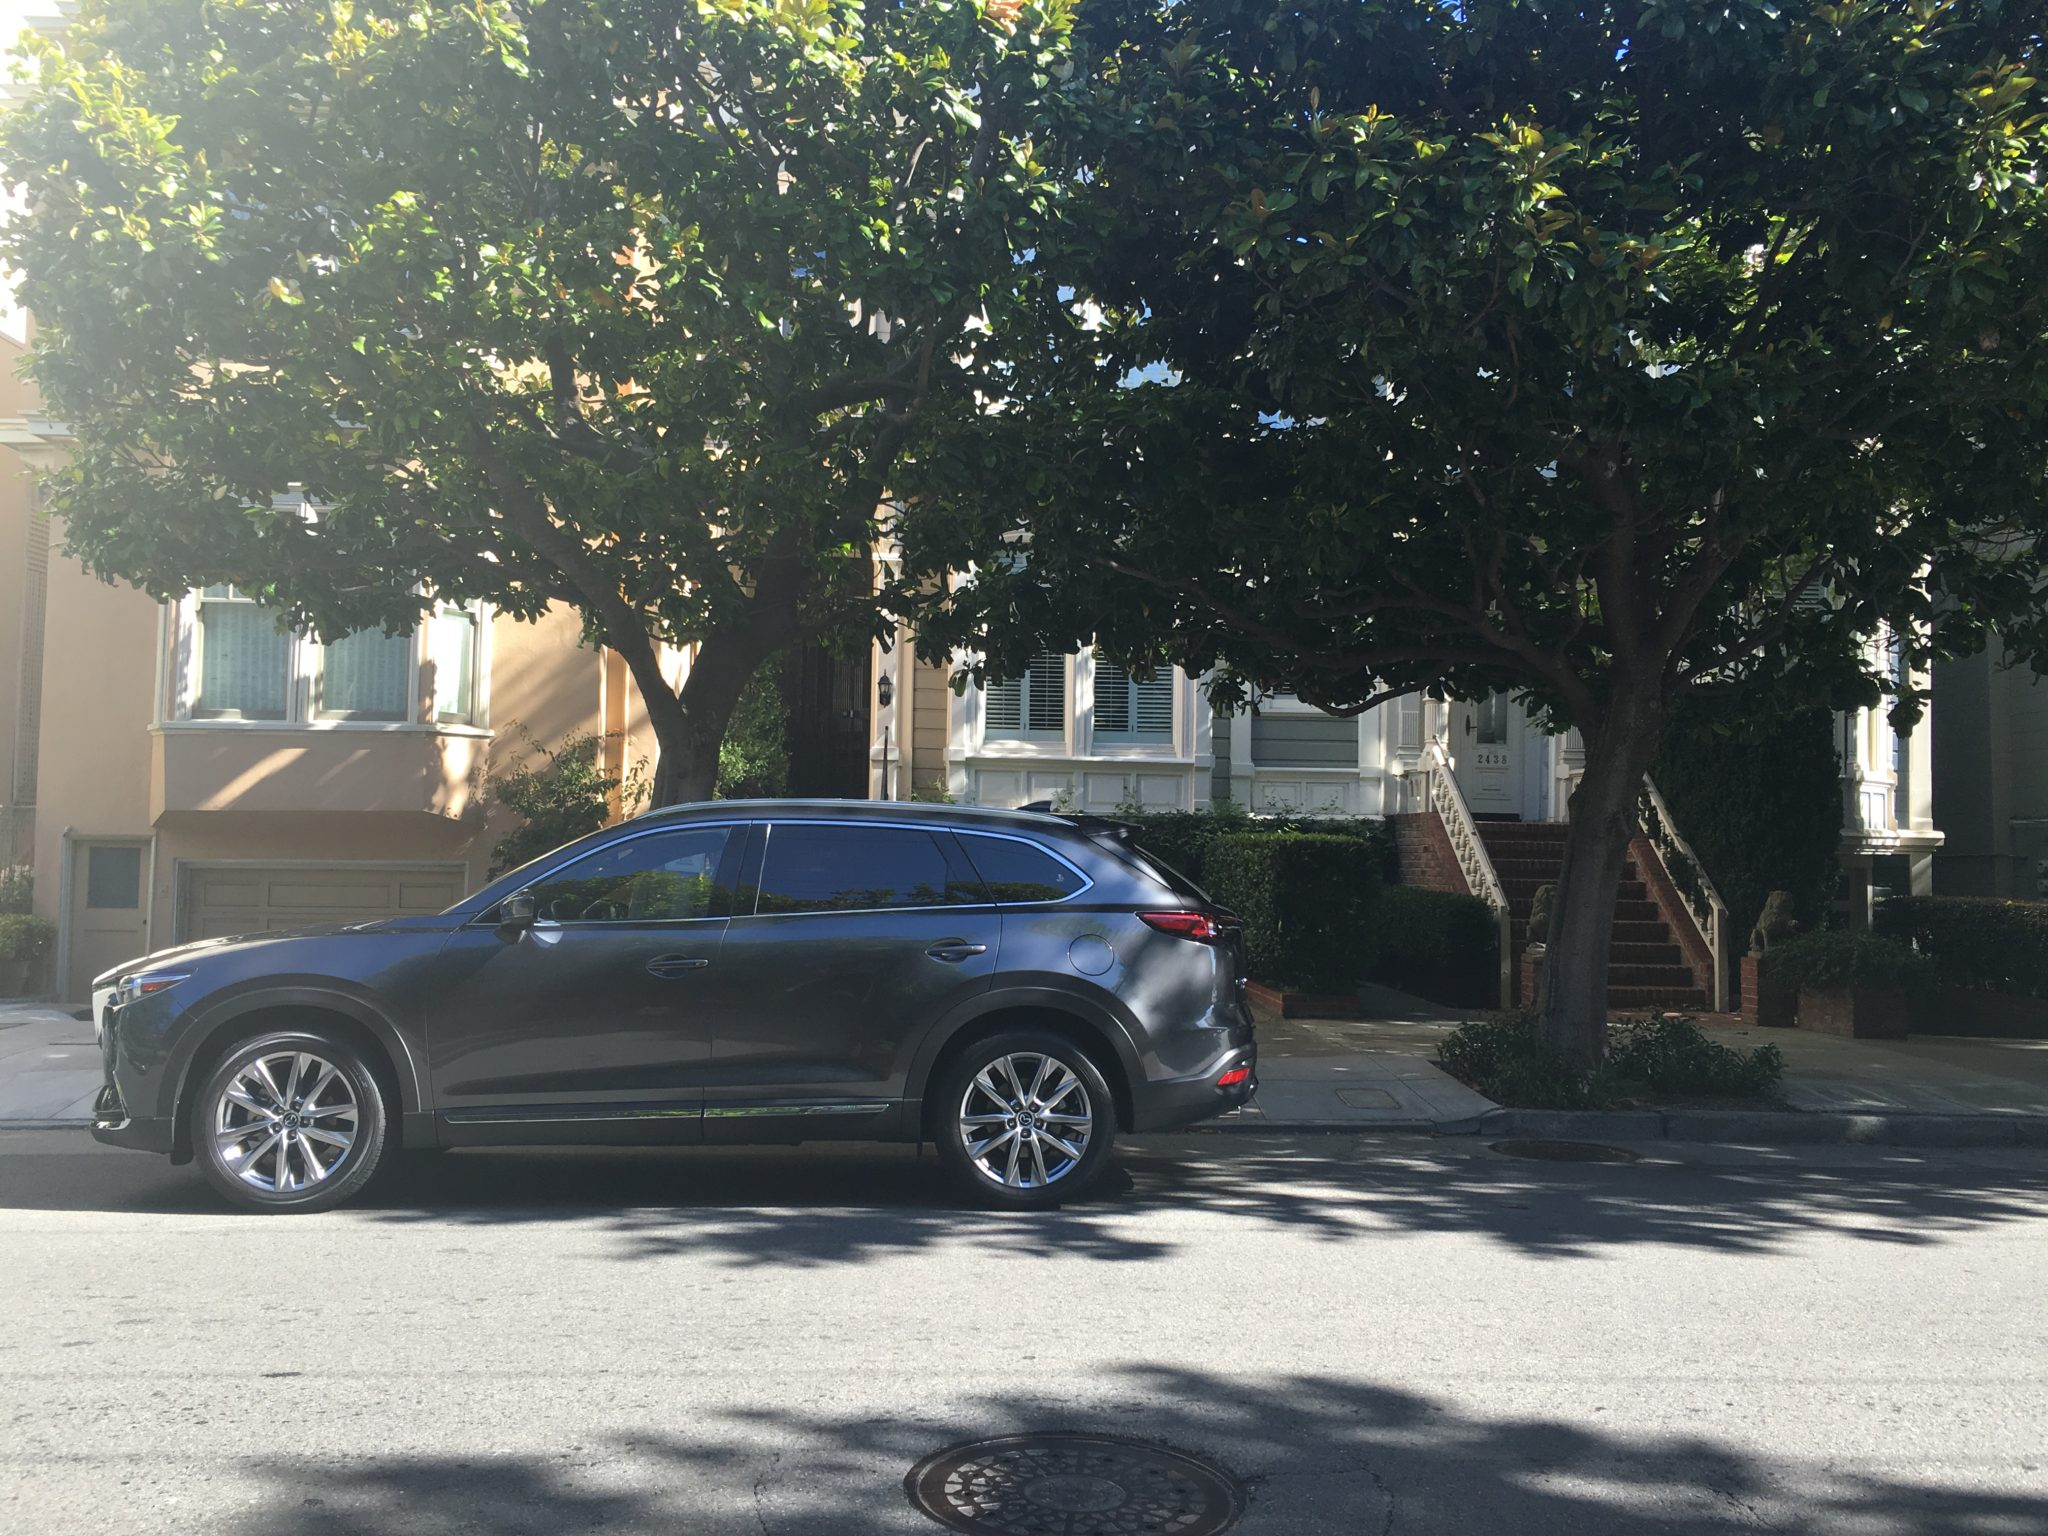 Weekend in San Francisco with Mazda